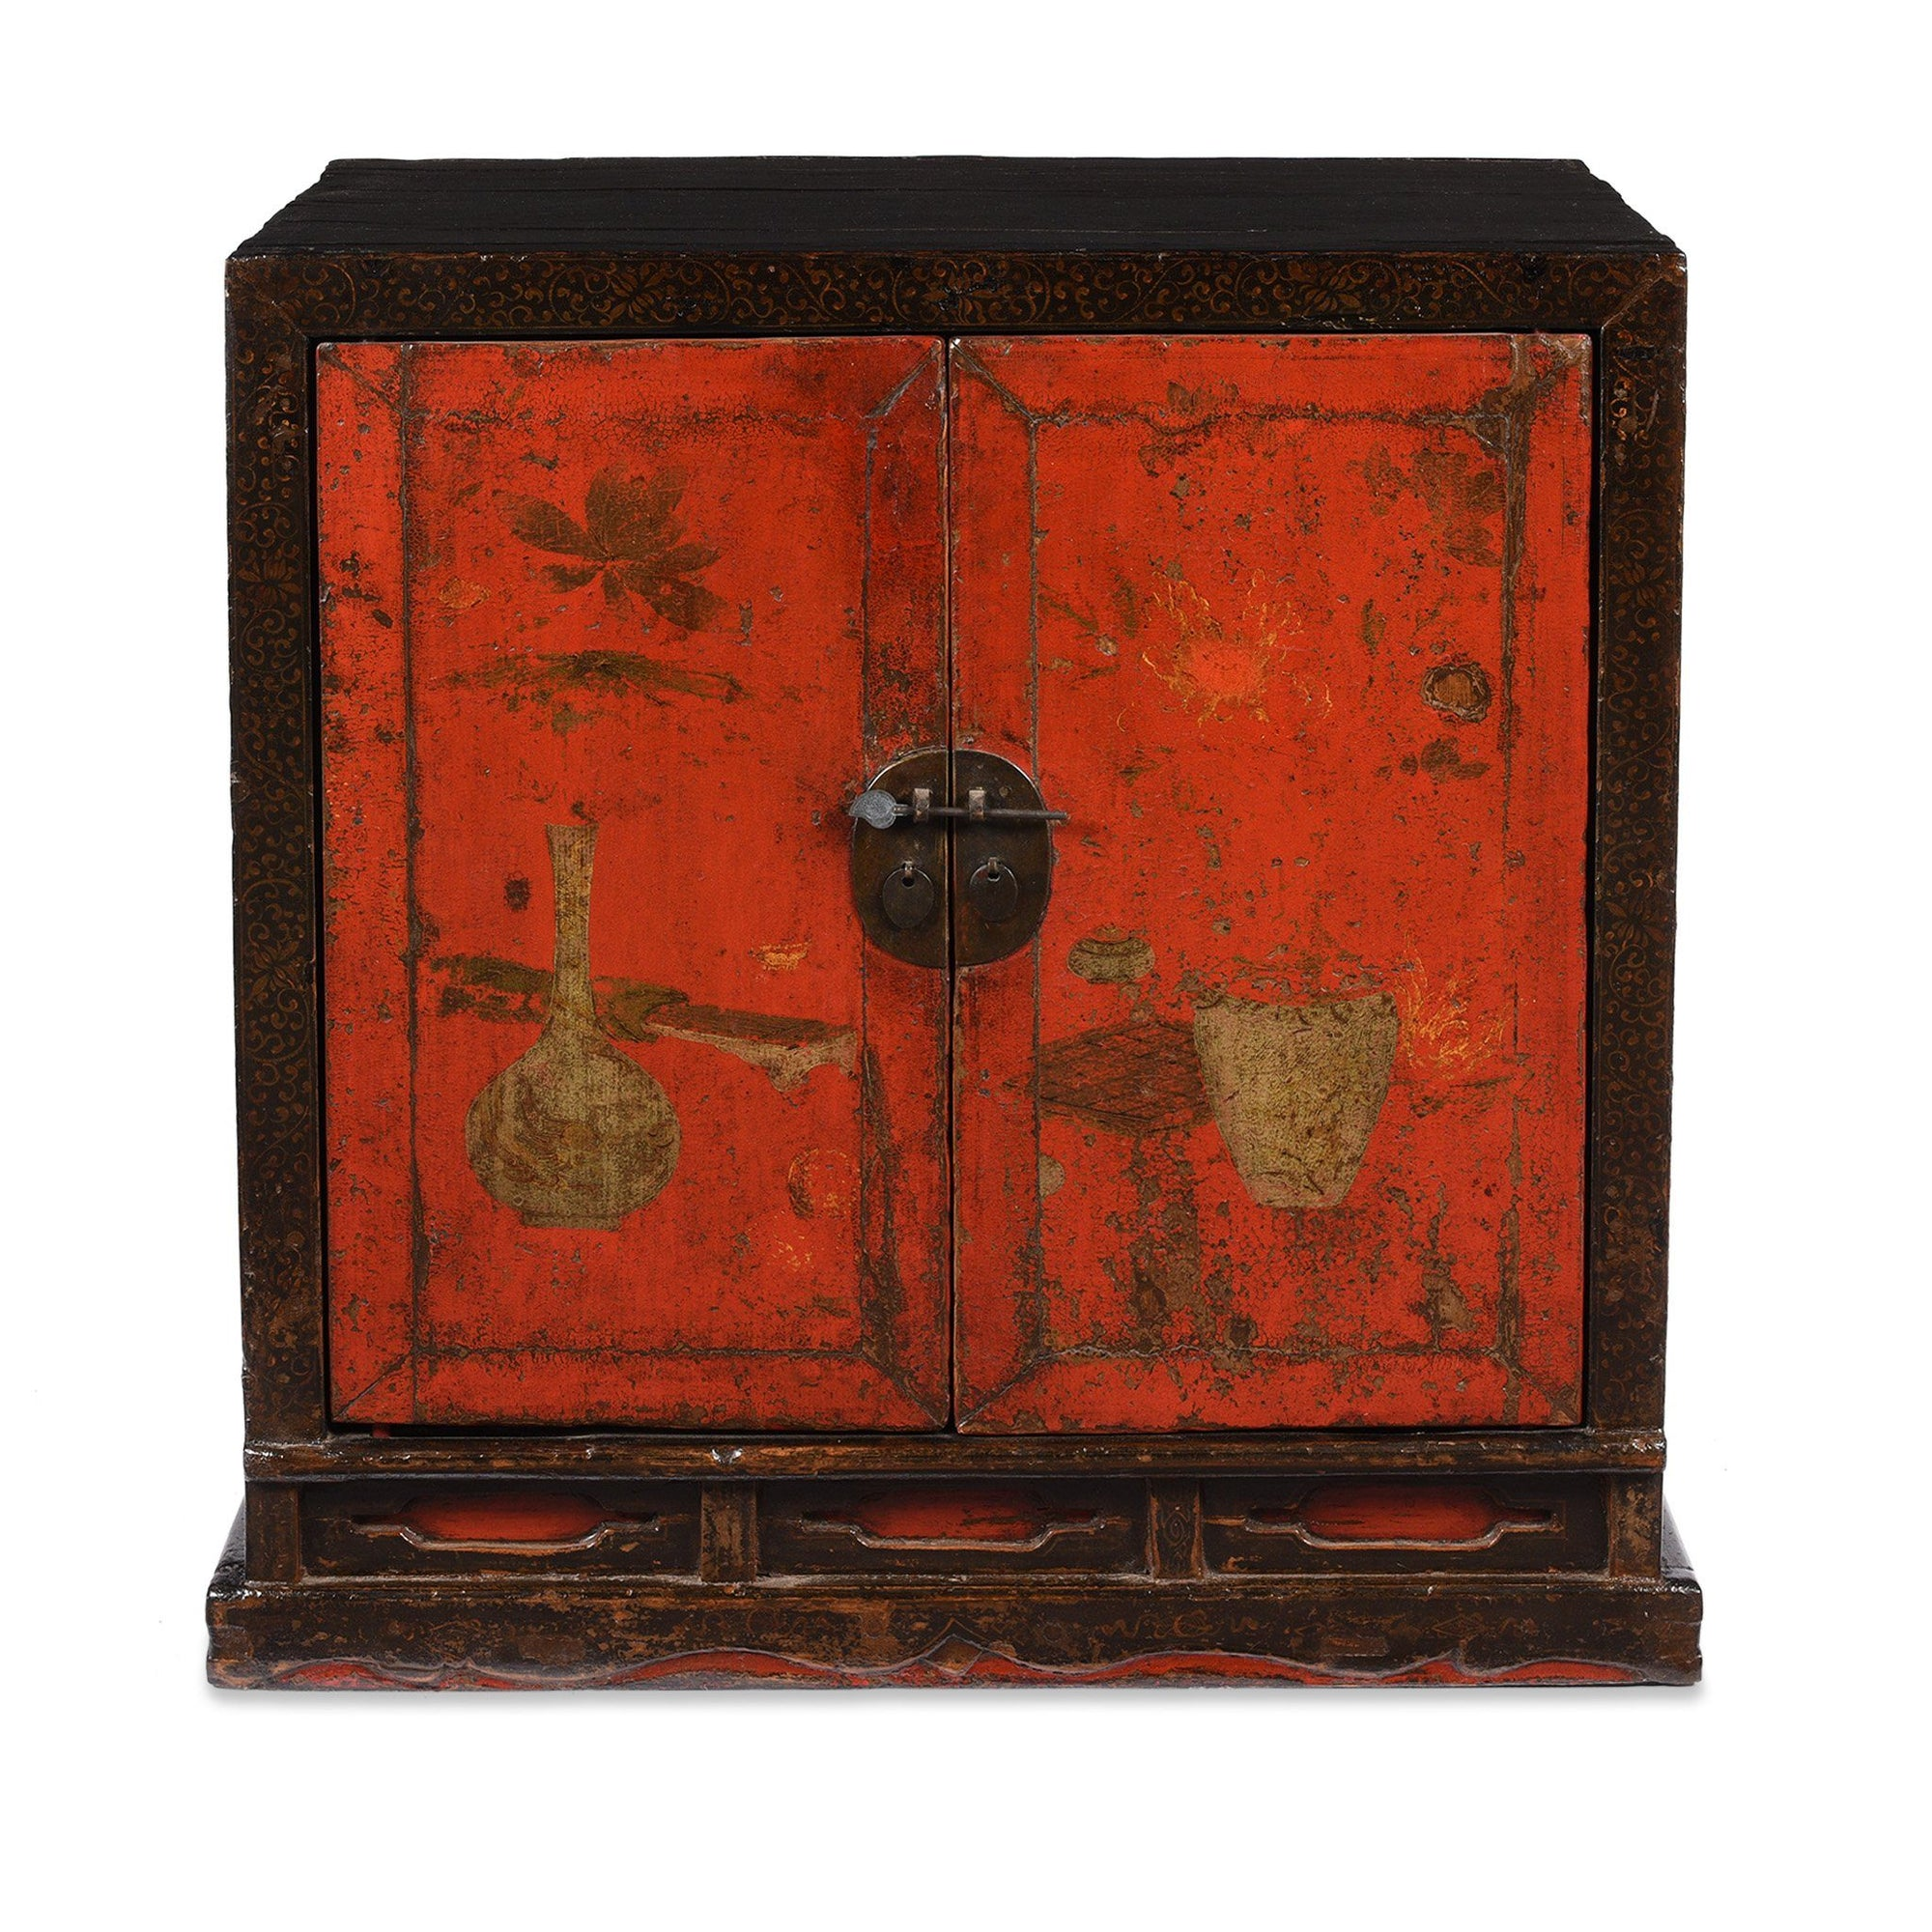 Black & Red Lacquer Book Cabinet from China - 19th Century | Indigo Oriental Antiques